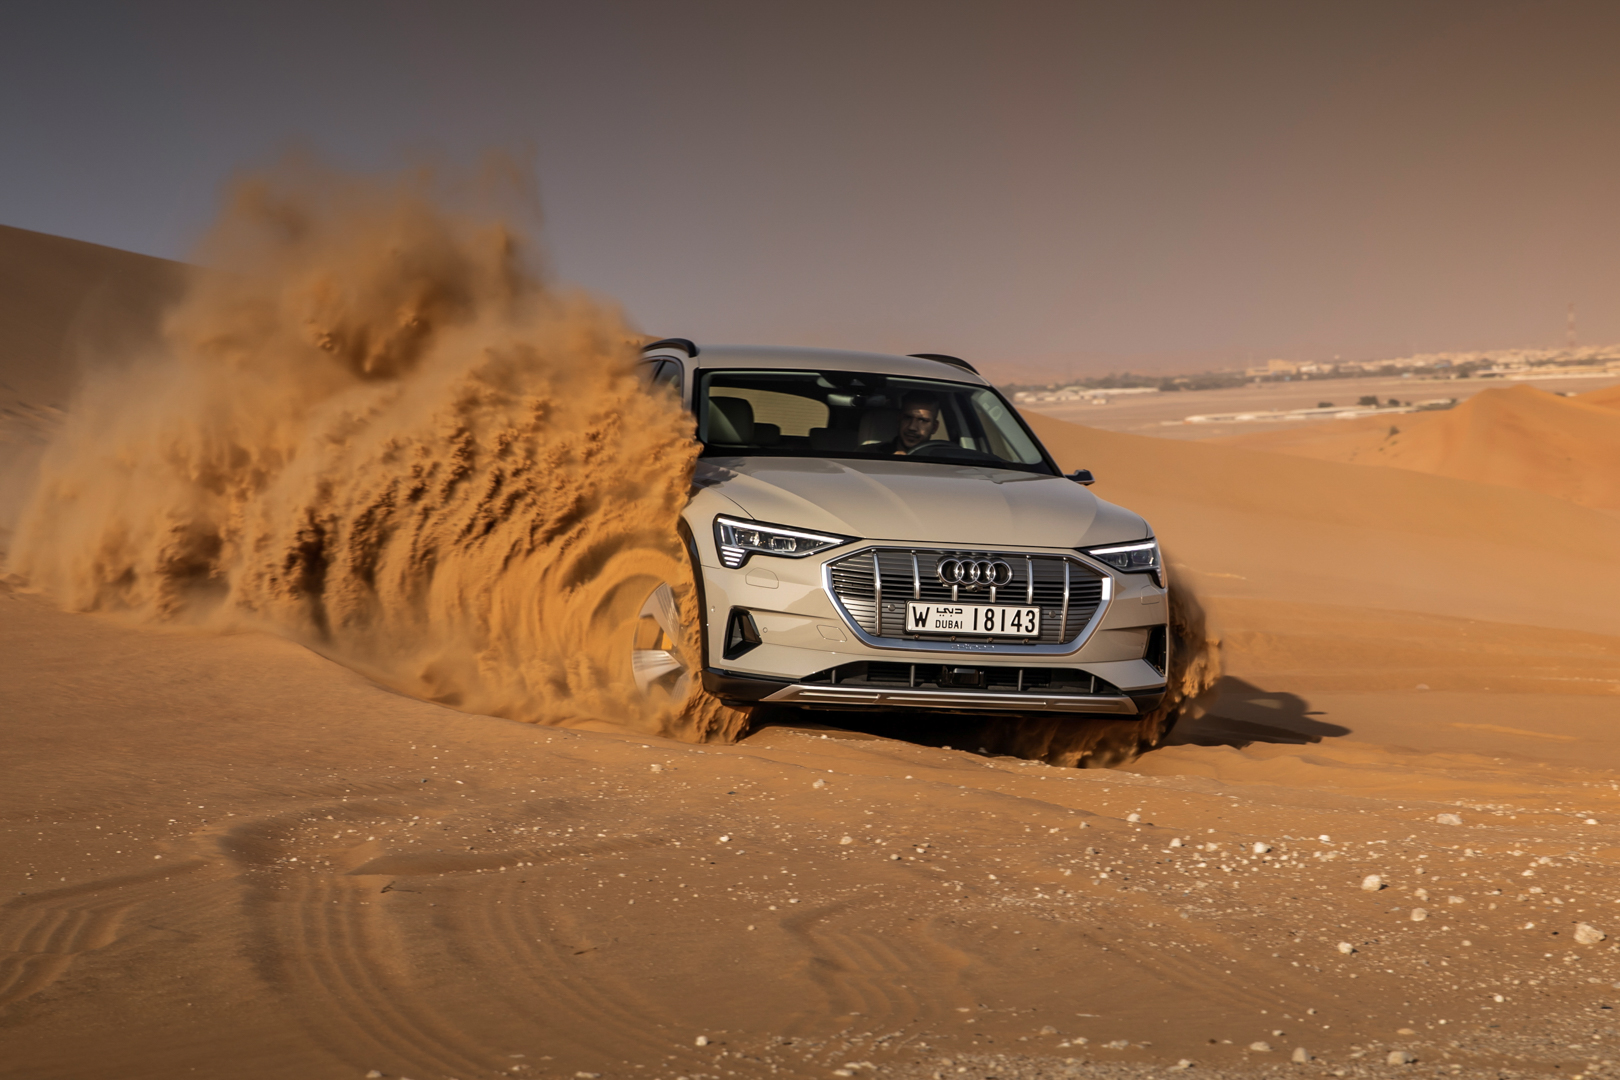 Check out this massive photo gallery of the Audi e-tron in Abu Dhabi